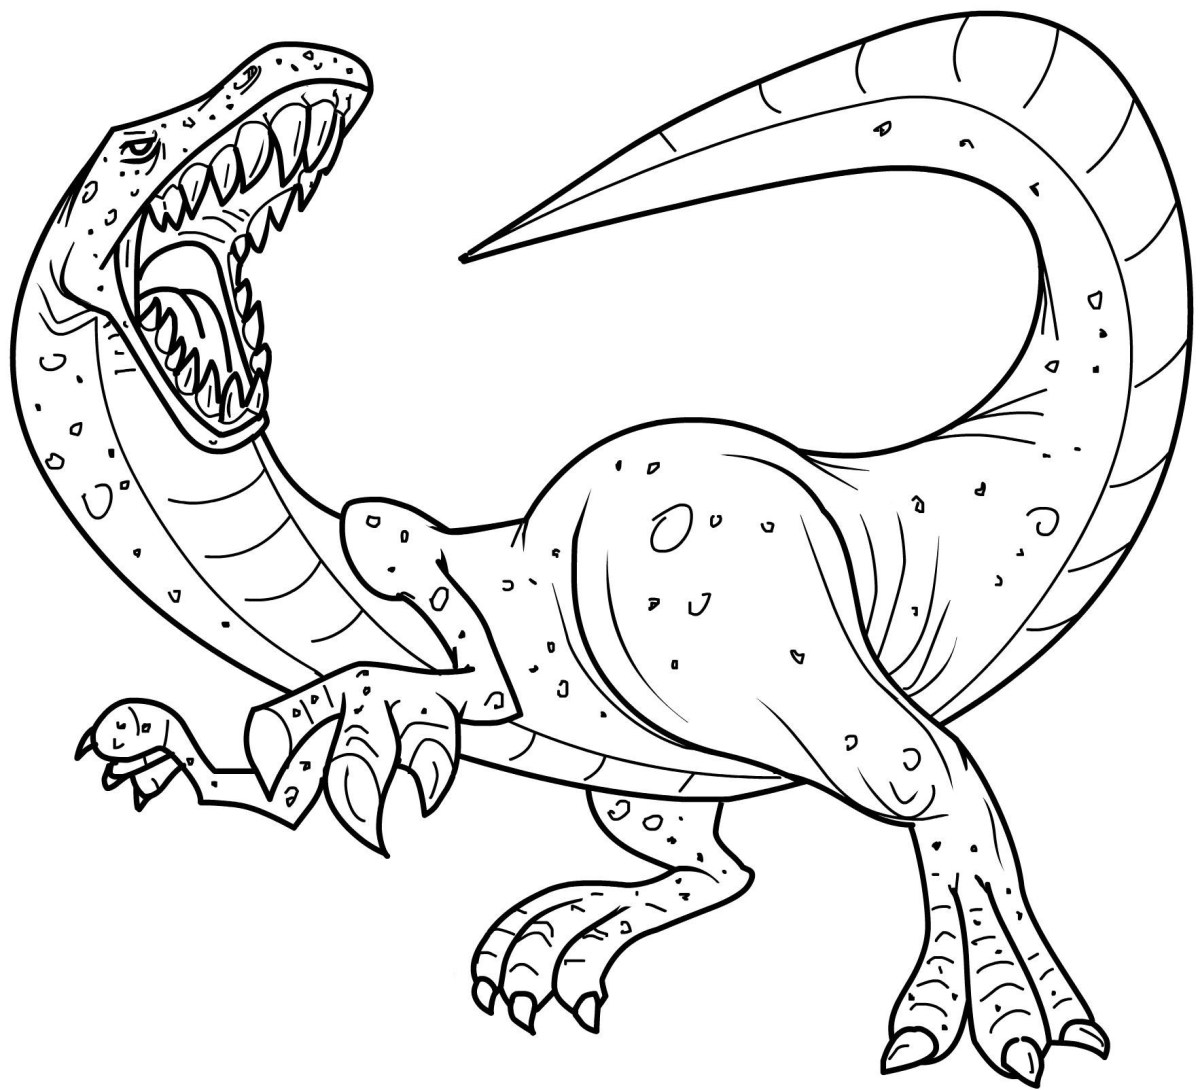 Printable Dinosaur Coloring Pages Dinosaurs Printable Coloring Pages Fresh Dinosaur Printable Coloring